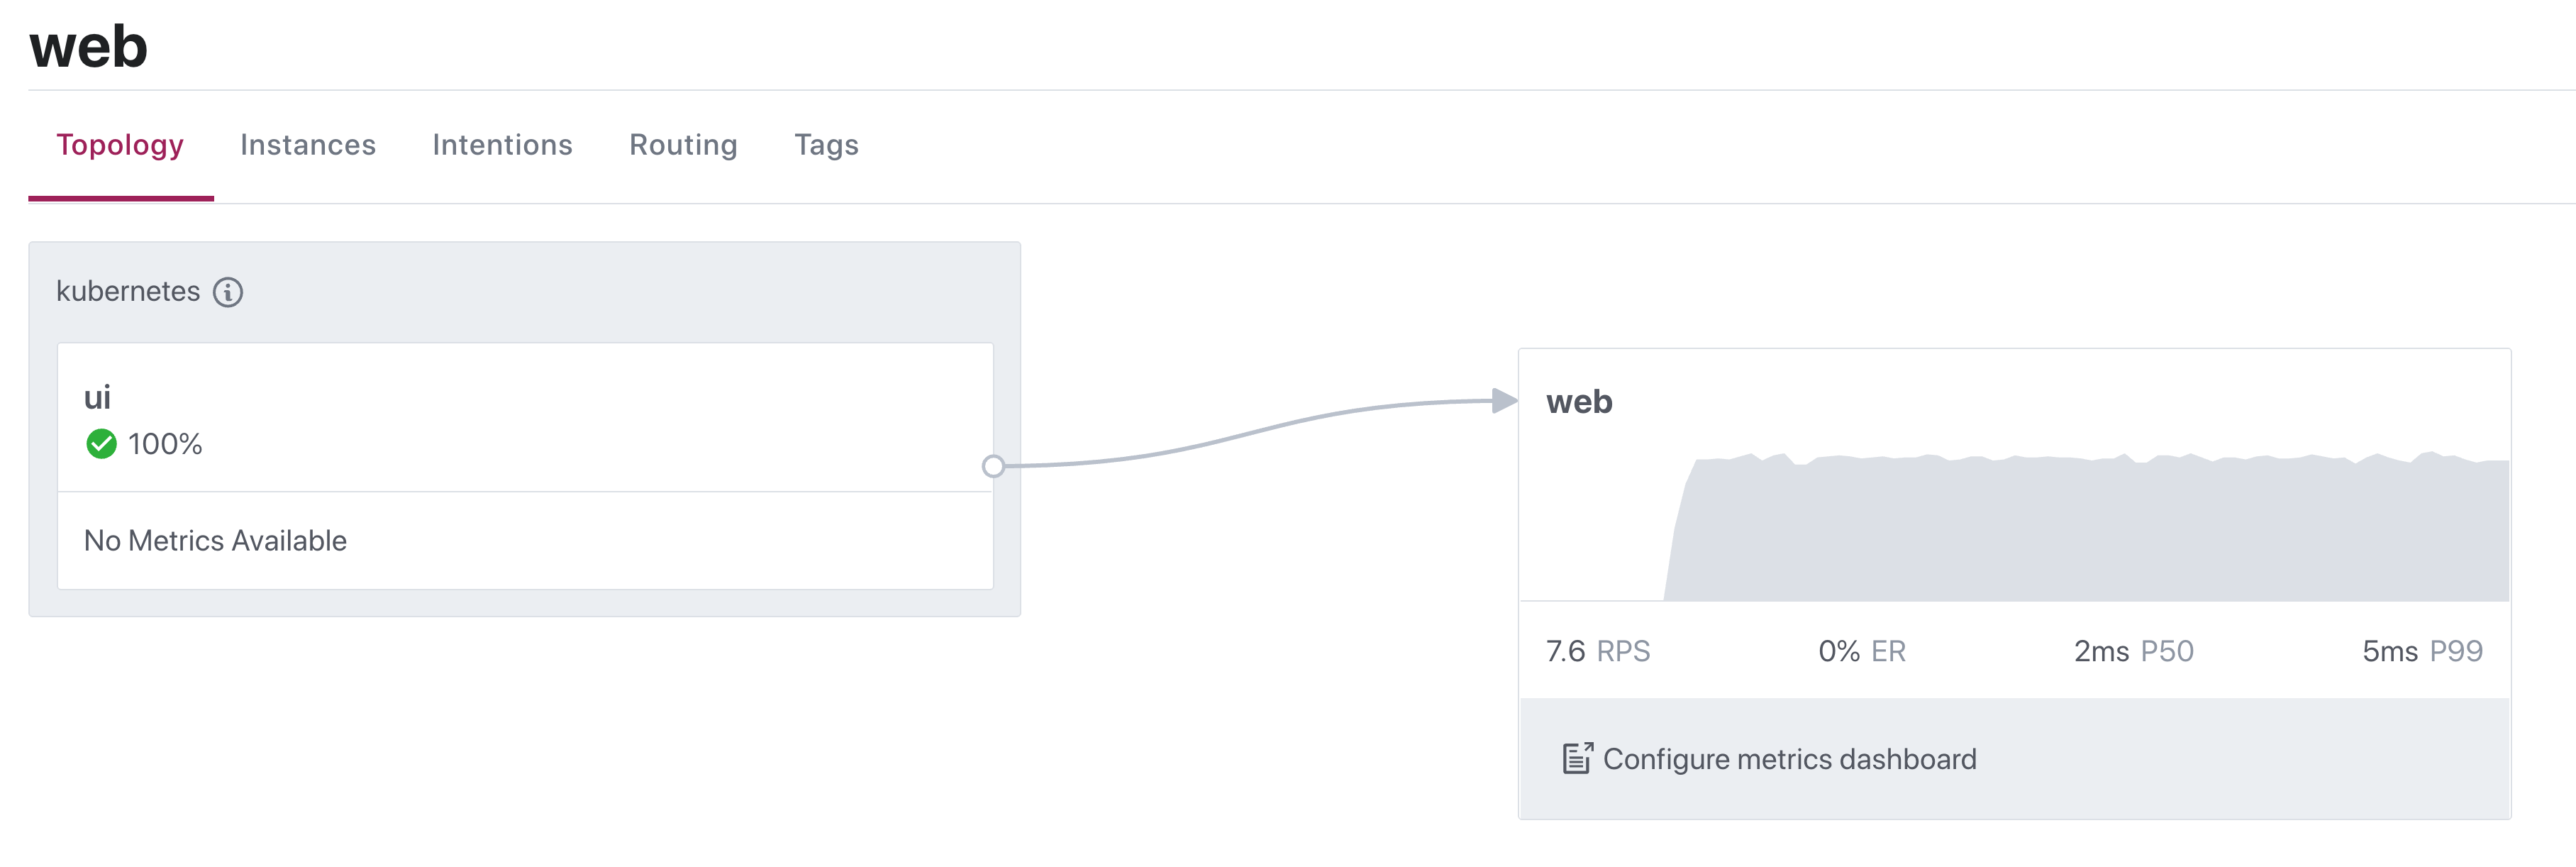 ui service connects to the baseline version of web service